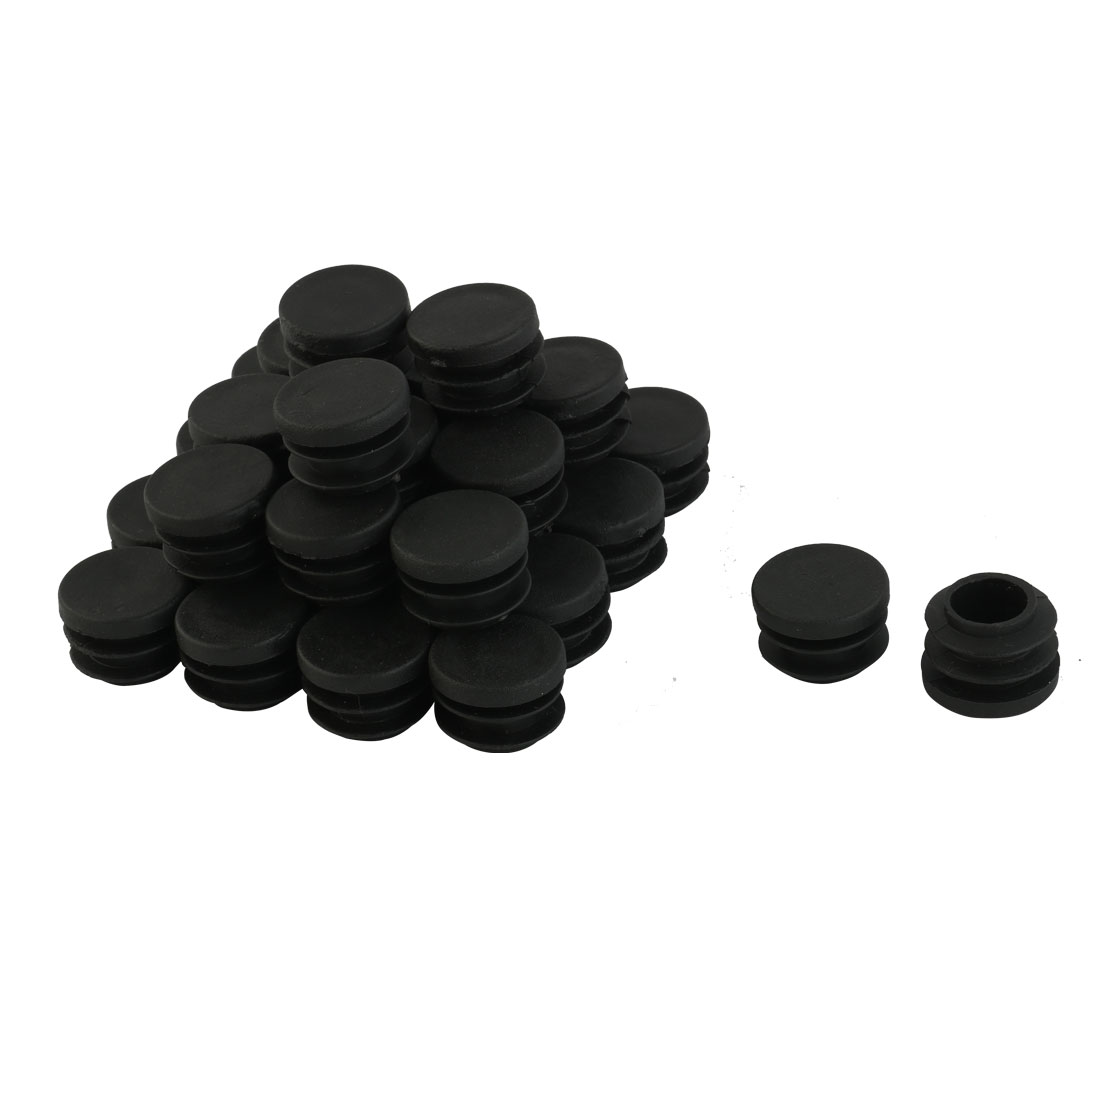 30 Pieces Black Plastic Round Blanking End Caps Tubing Tube Inserts 19mm Dia